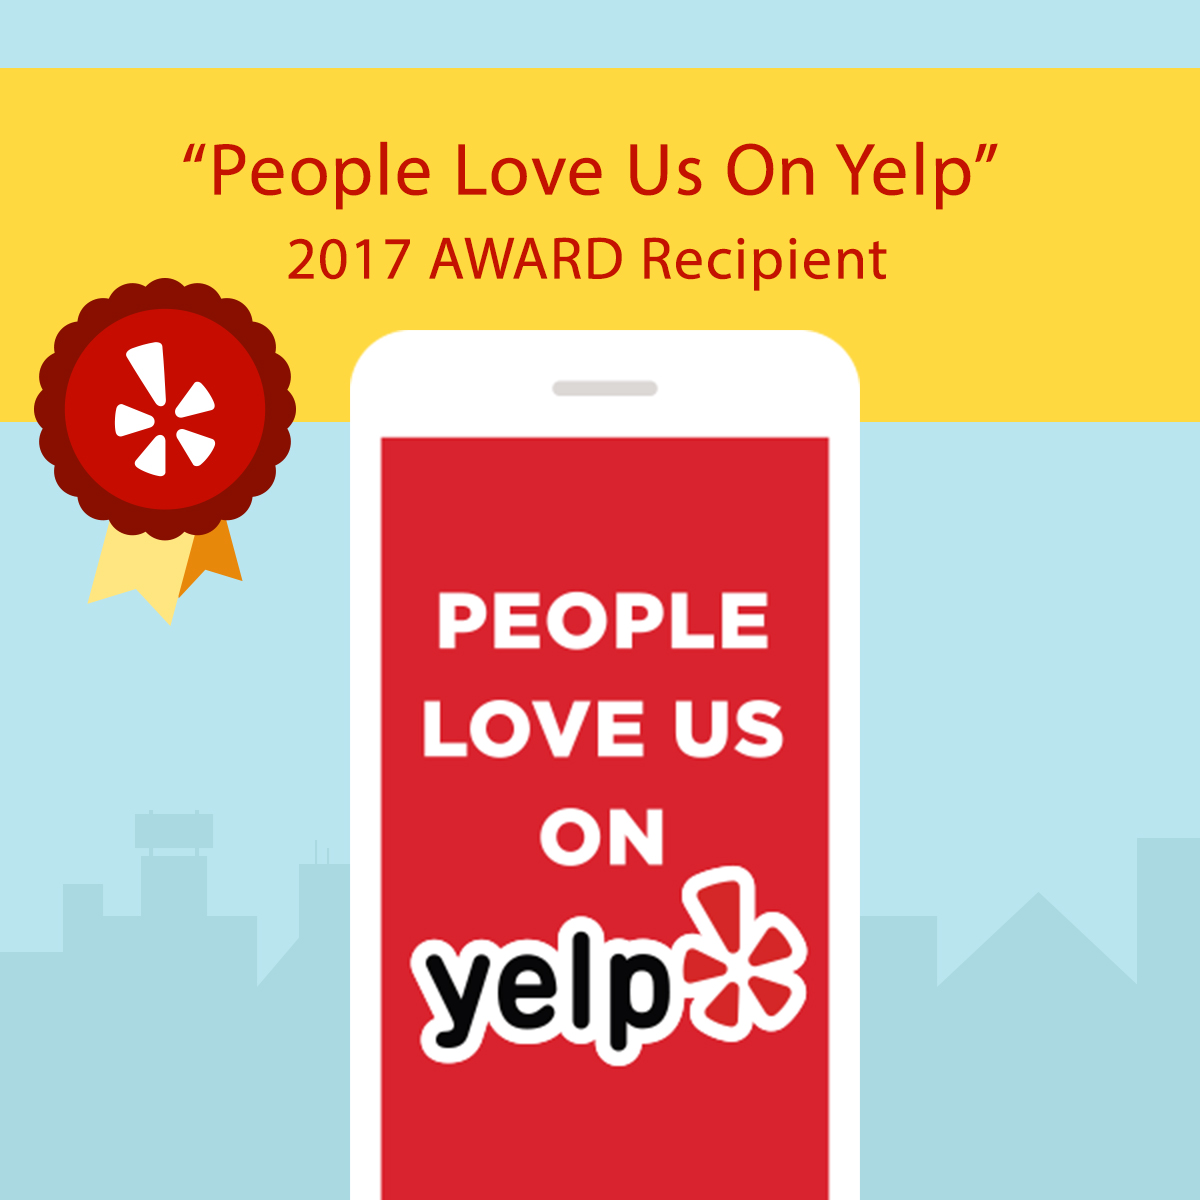 Winner 2017 YELP Award